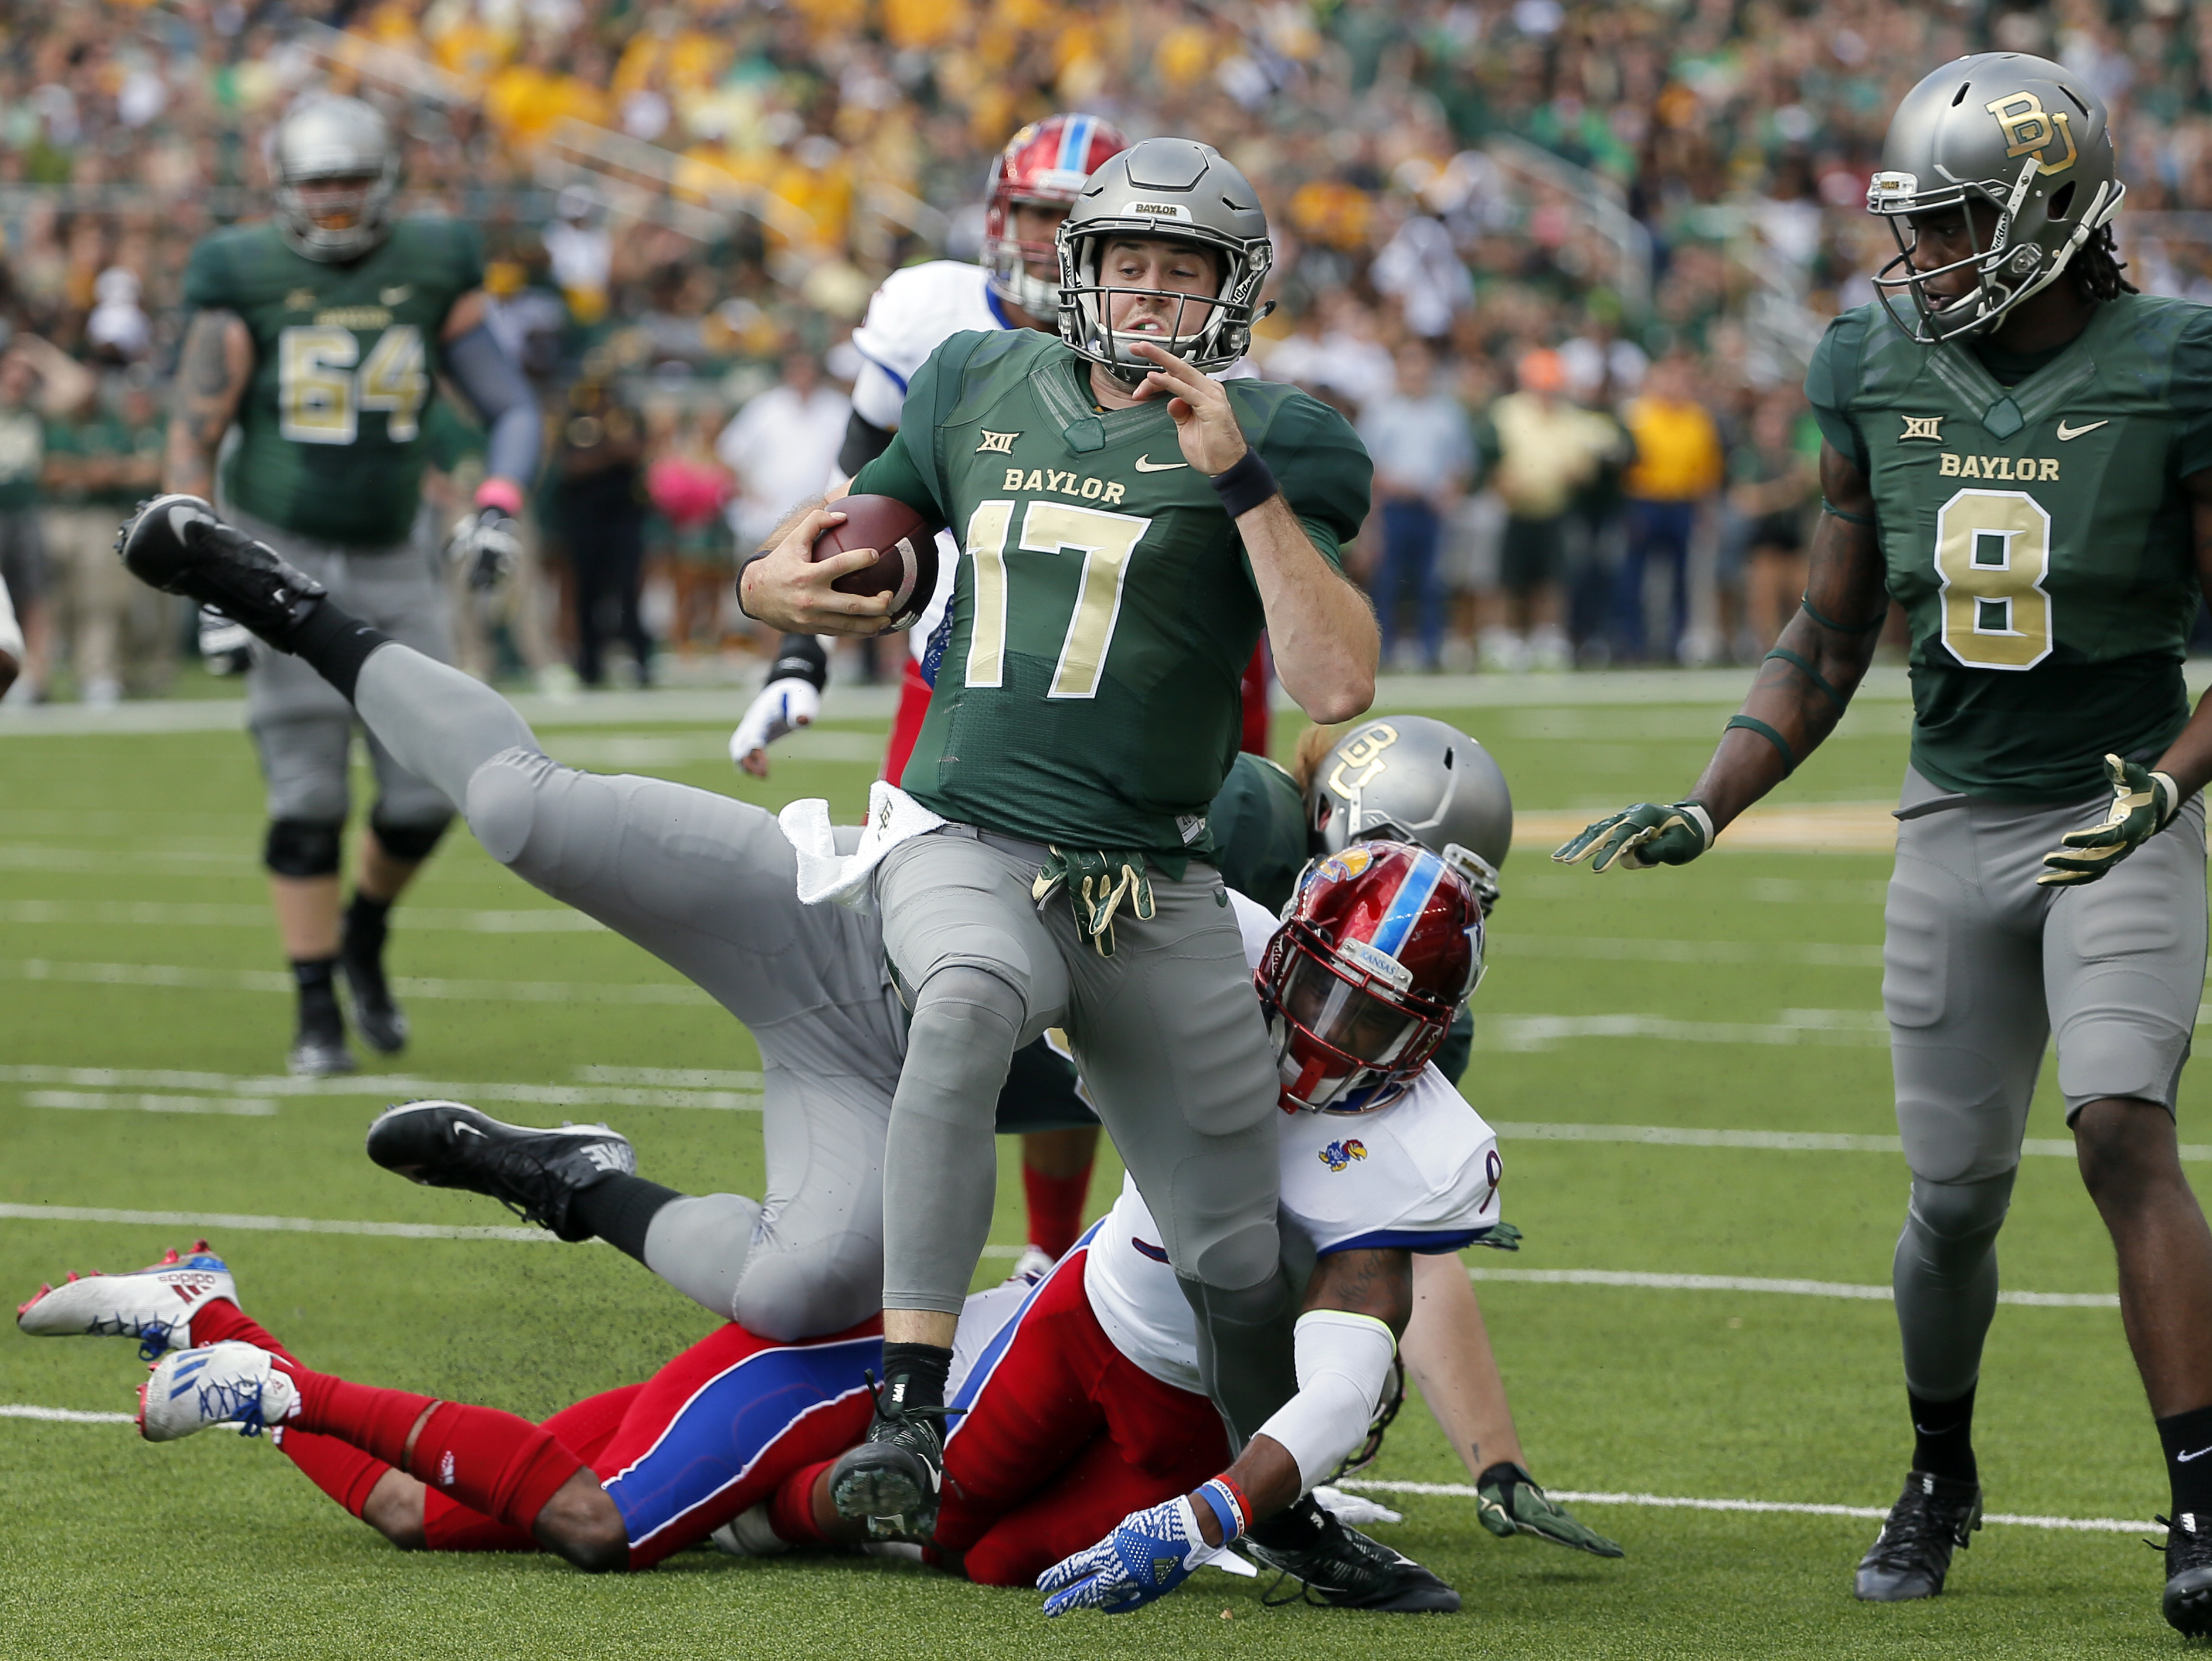 FILE - In this Oct. 15, 2016, file photo, Baylor quarterback Seth Russell (17) escapes a tackle attempt by Kansas safety Fish Smithson (9) as wide receiver Ishmael Zamora (8) watches Russell continue on to the end zone for a touchdown during an NCAA colle